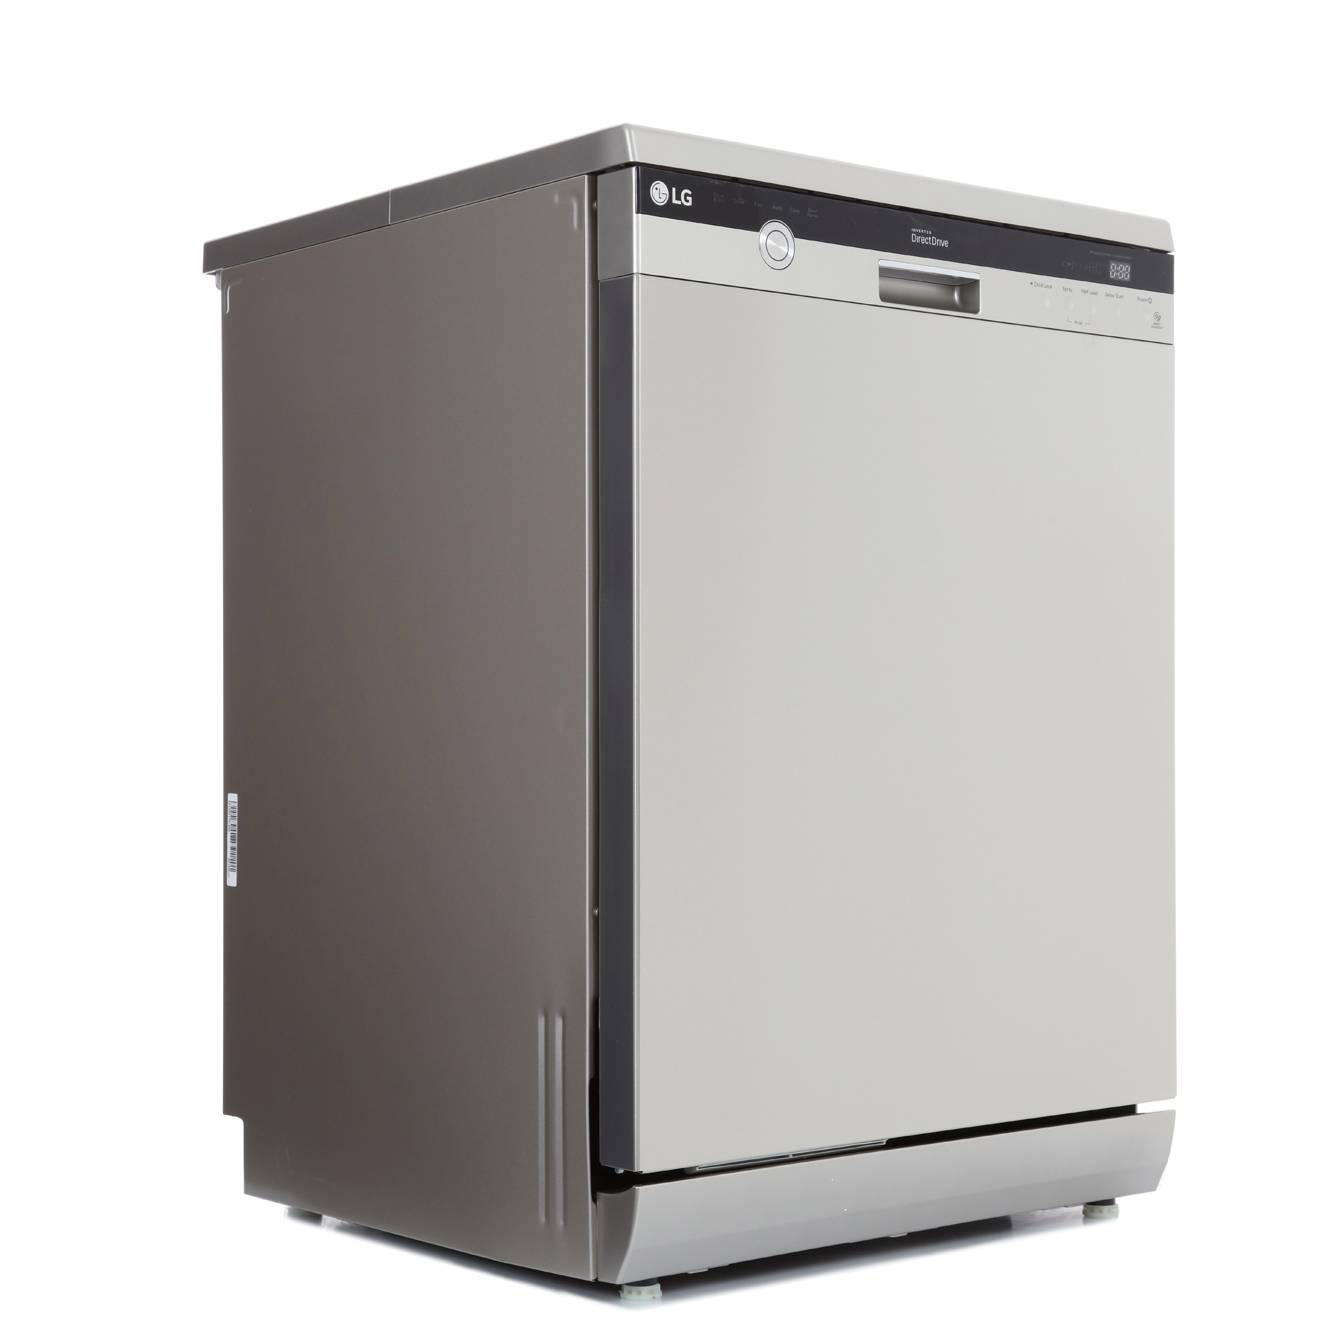 LG D1483CF Dishwasher - Stainless Steel